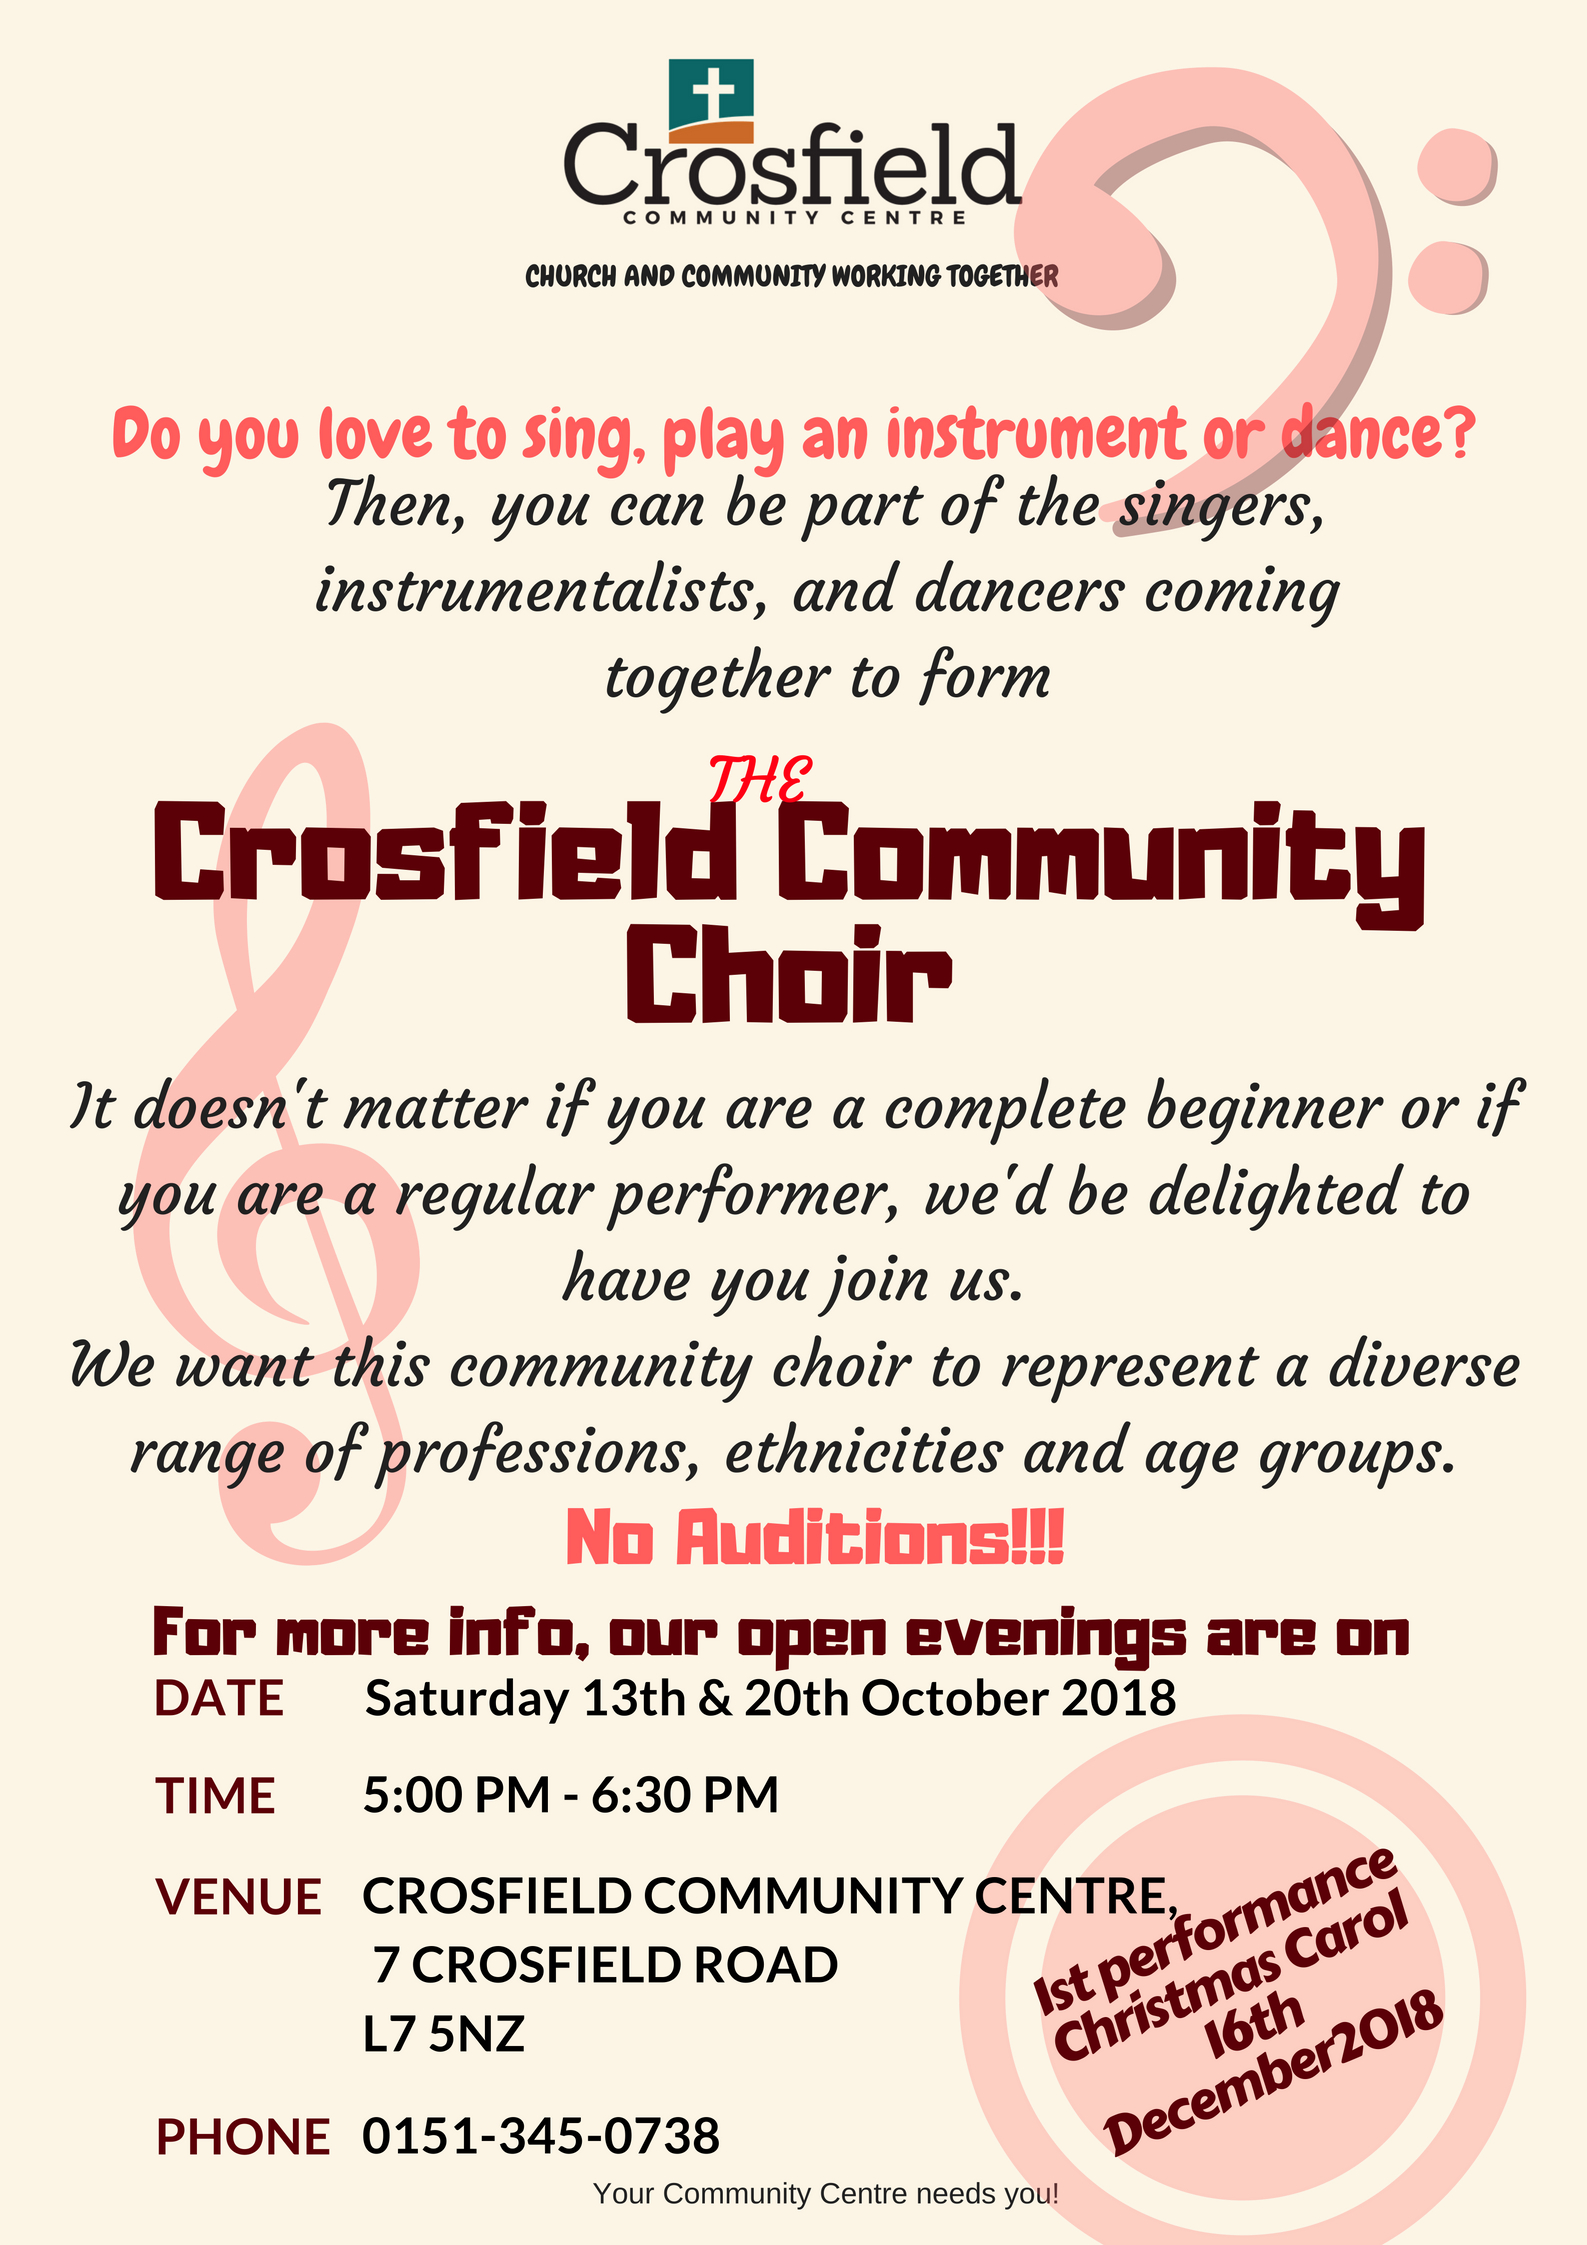 Crosfield Community Choir 2nd open evening @ Crosfield Community Centre